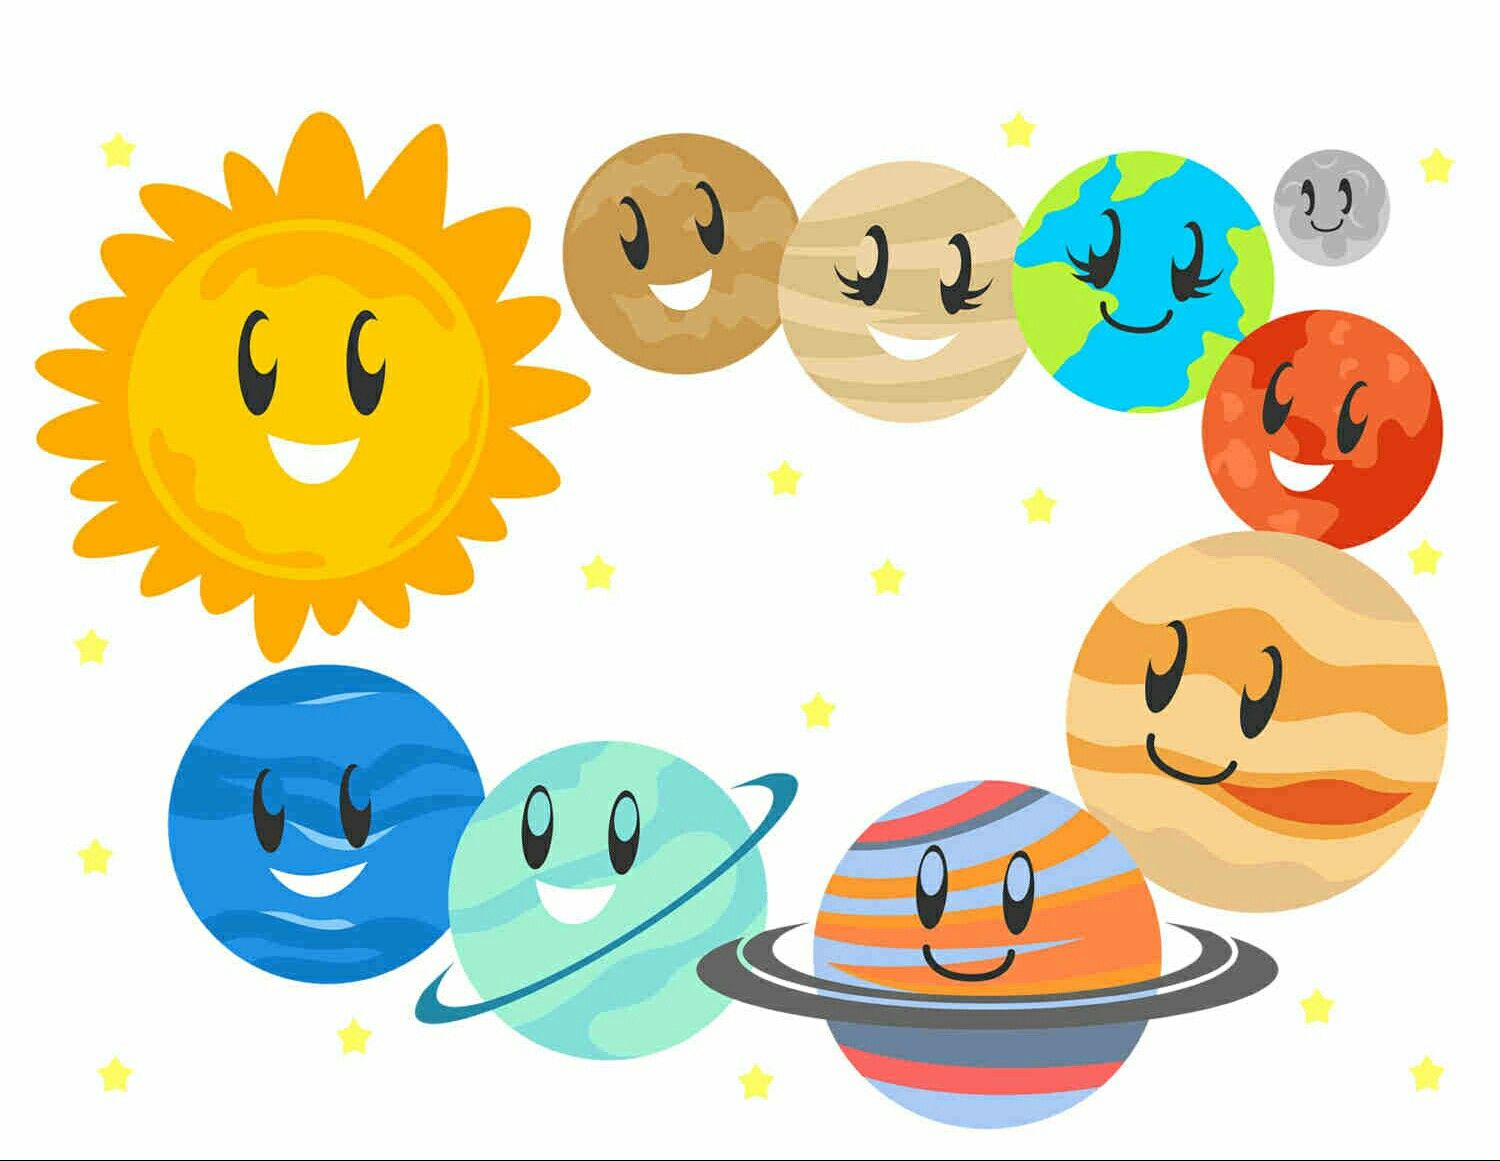 Planeten clipart adorable. Pin by lady vodka